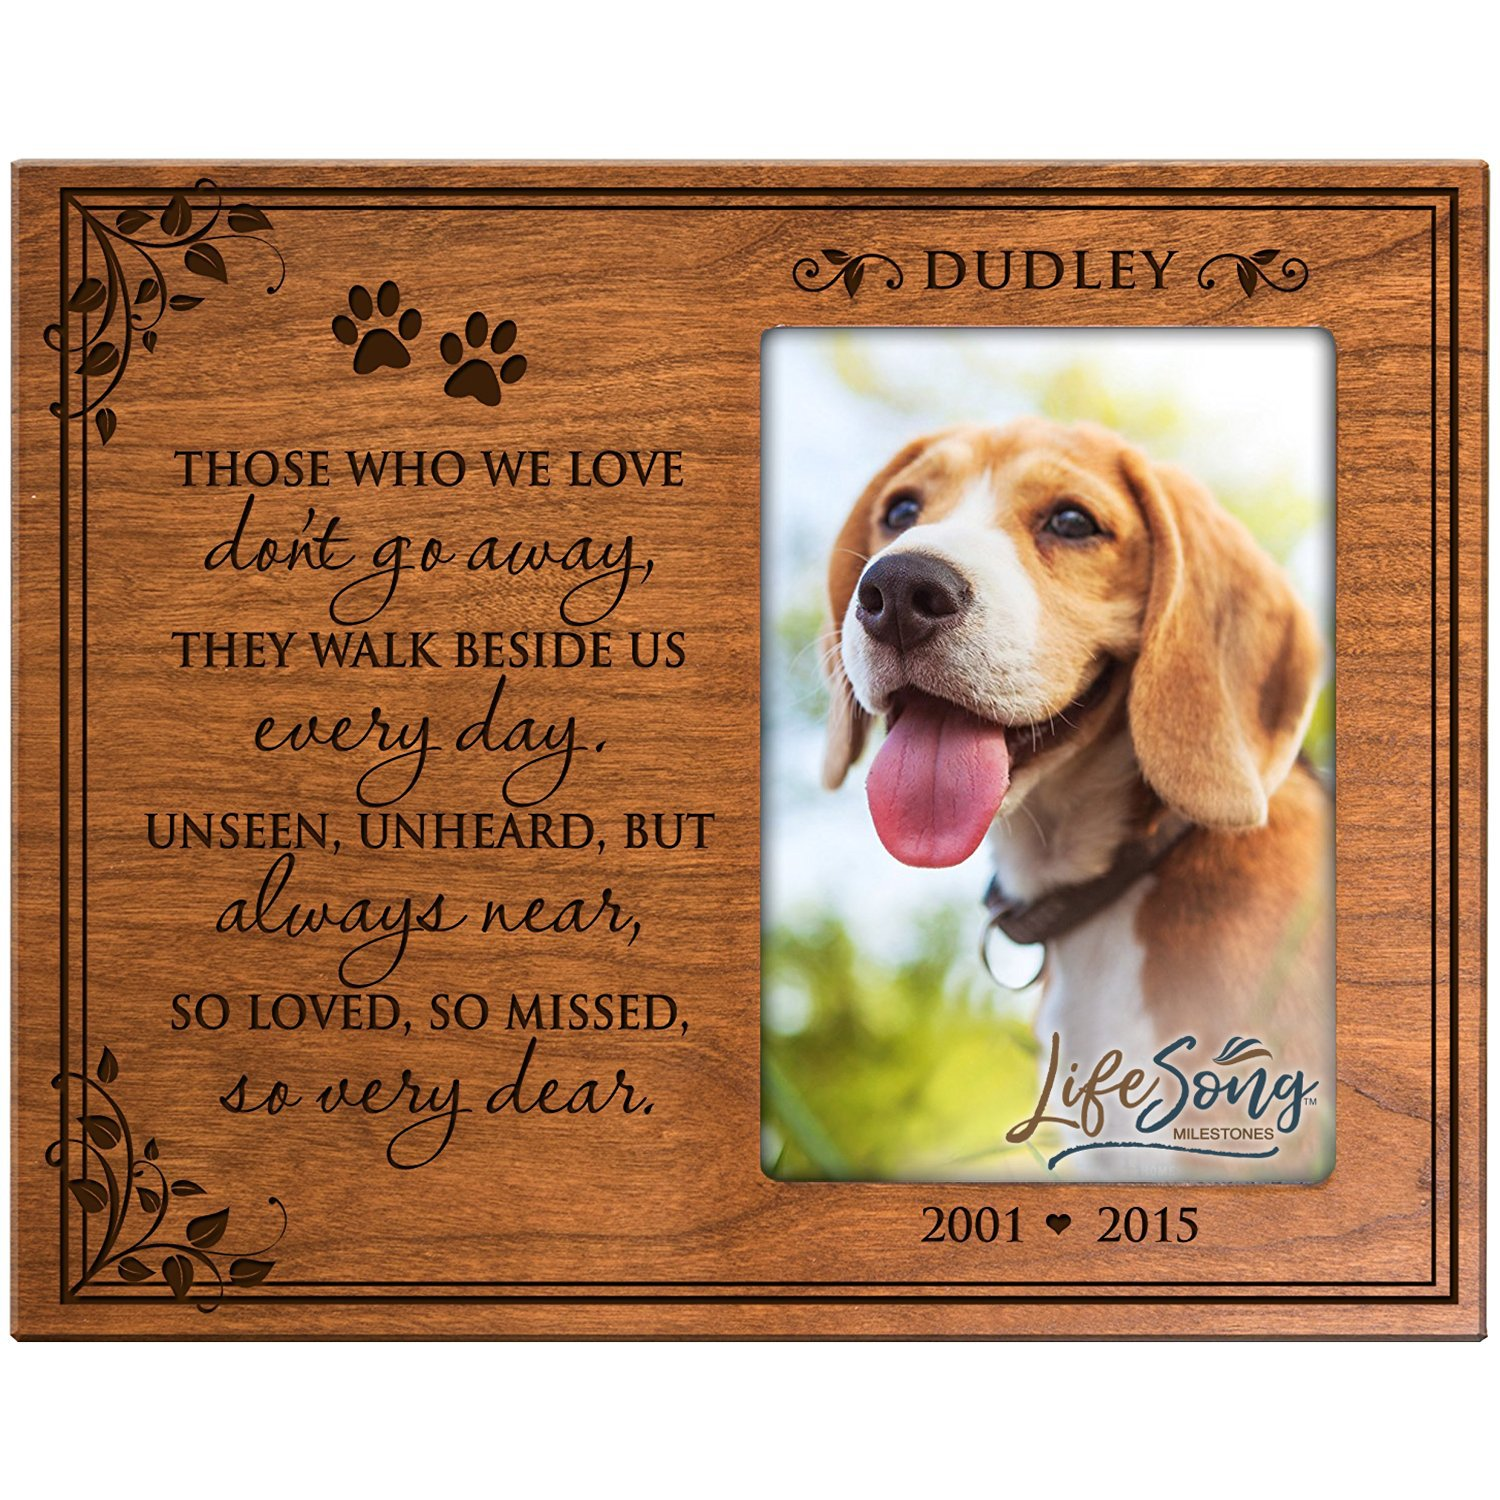 LifeSong Milestones Personalized Pet Memorial Gift, Sympathy Photo Frame, Those Who We Love Don't Go Away They Walk Beside Us Every Day, Custom Frame Holds 4x6 Photo by USA Made (Cherry)